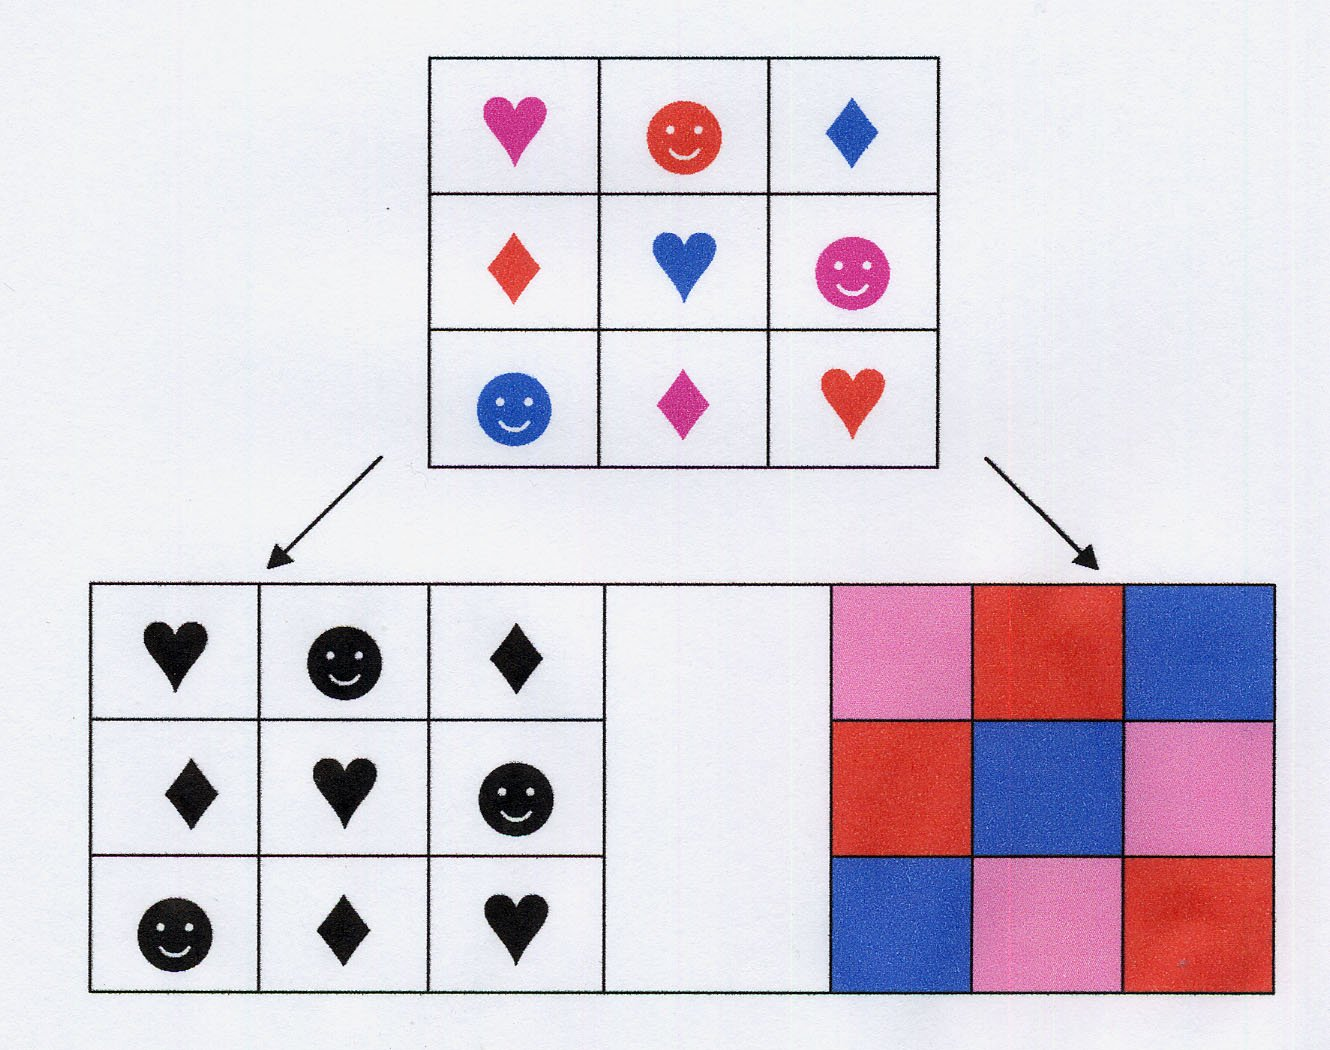 Euler squares this euler square can be decomposed into two latin squares one with the three symbols and the other with the three colors see figure 3 buycottarizona